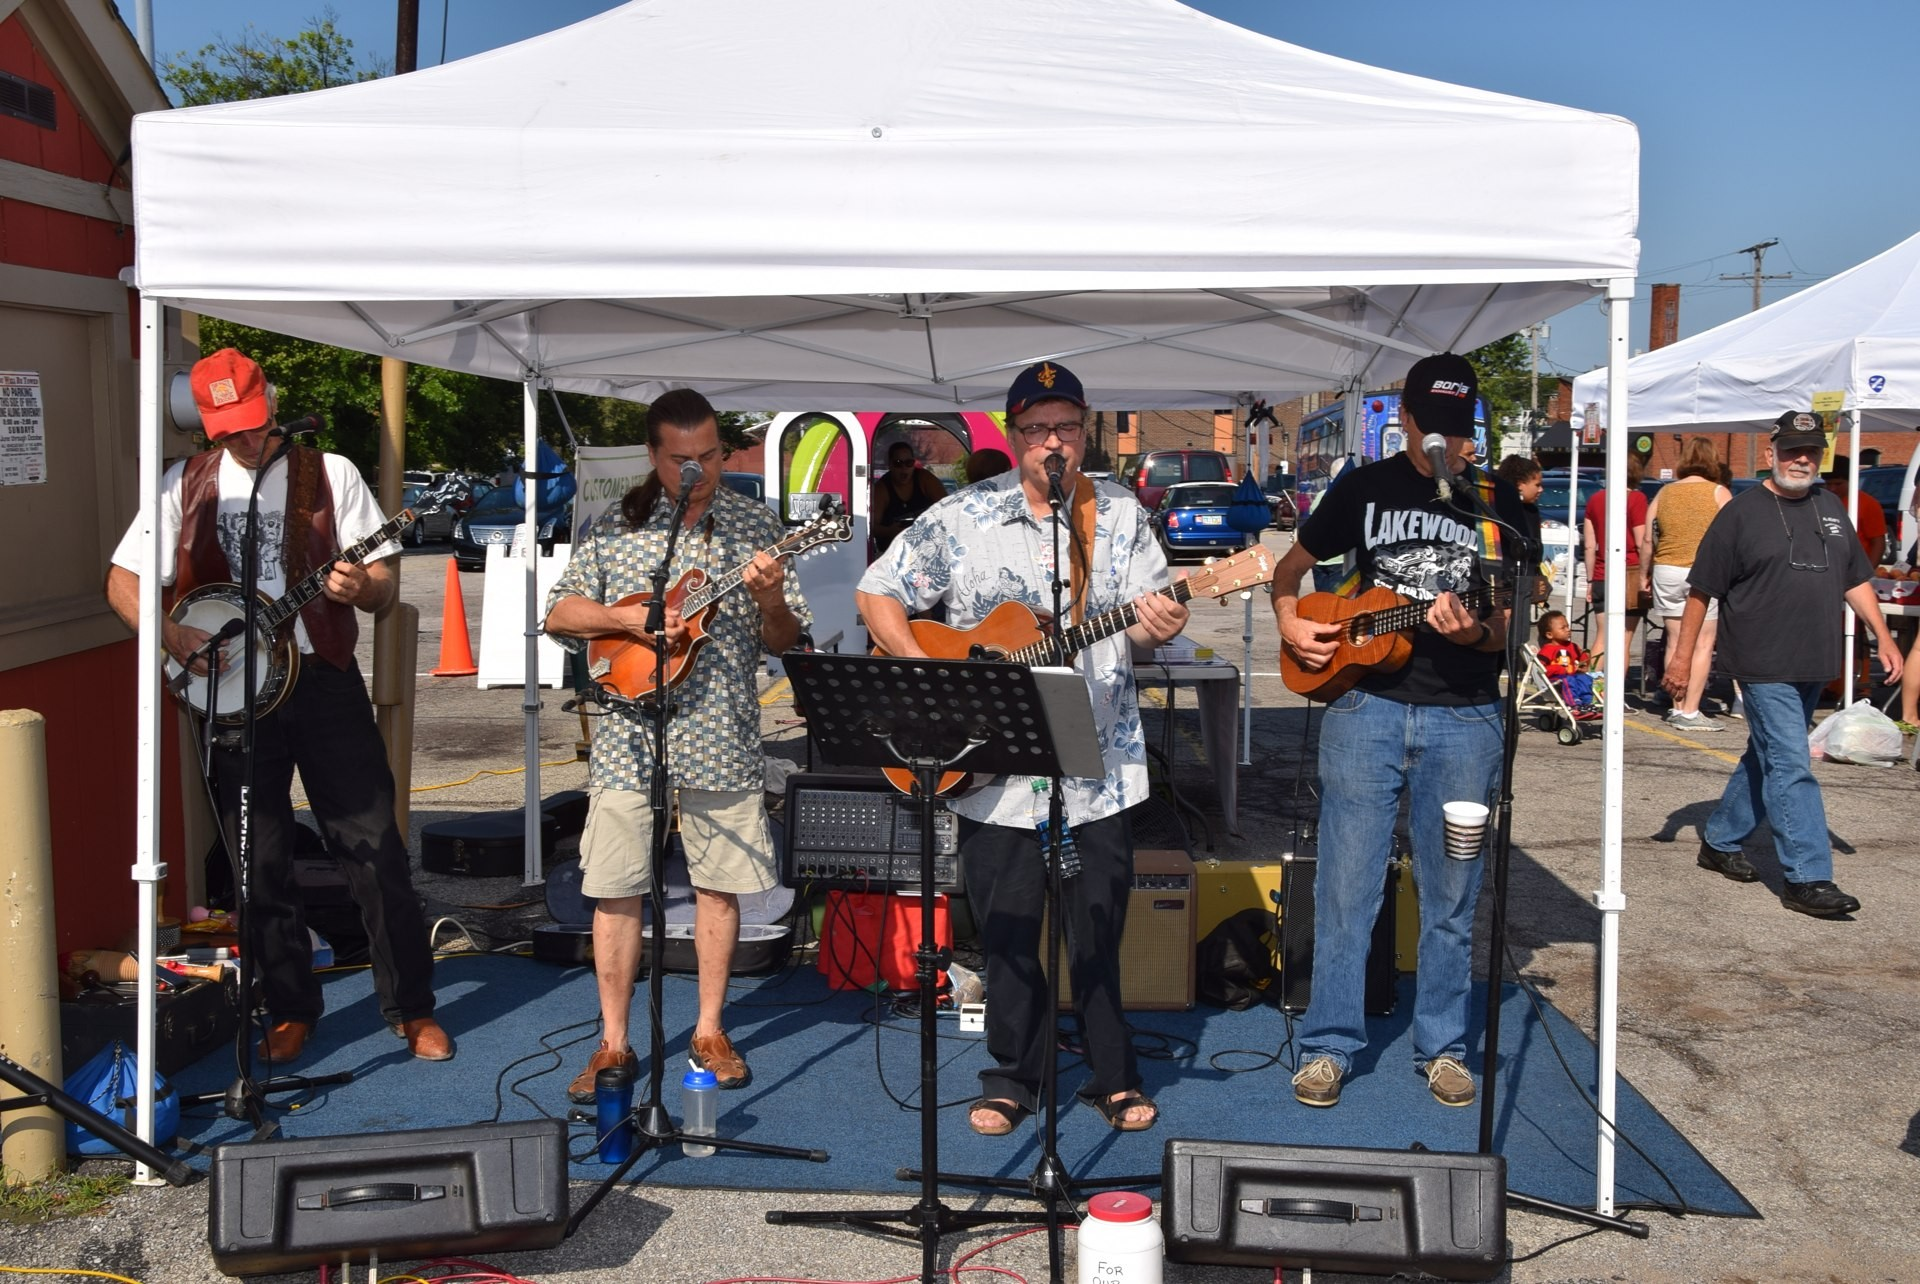 kamm's corners farmers market to feature eclectic lineup of